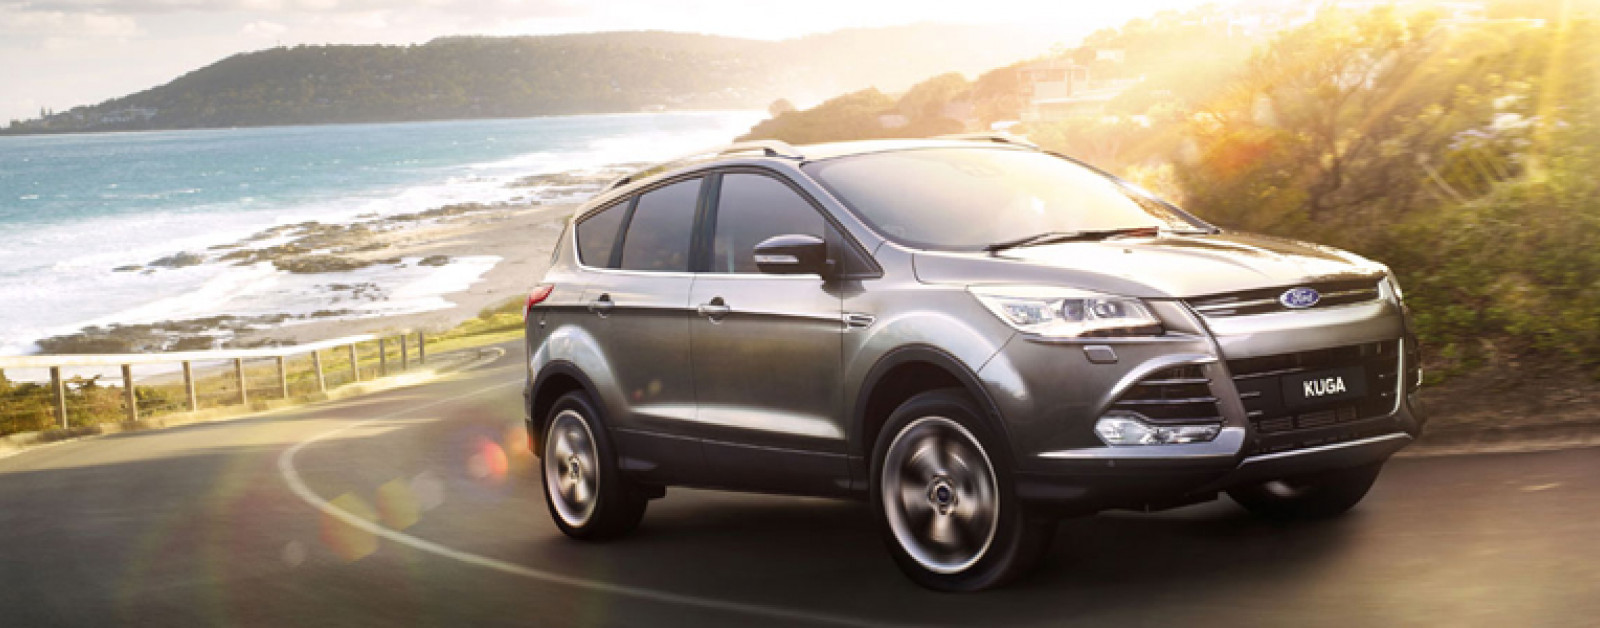 Kuga vehicles for sale in woden belconnen mitchell goulburn